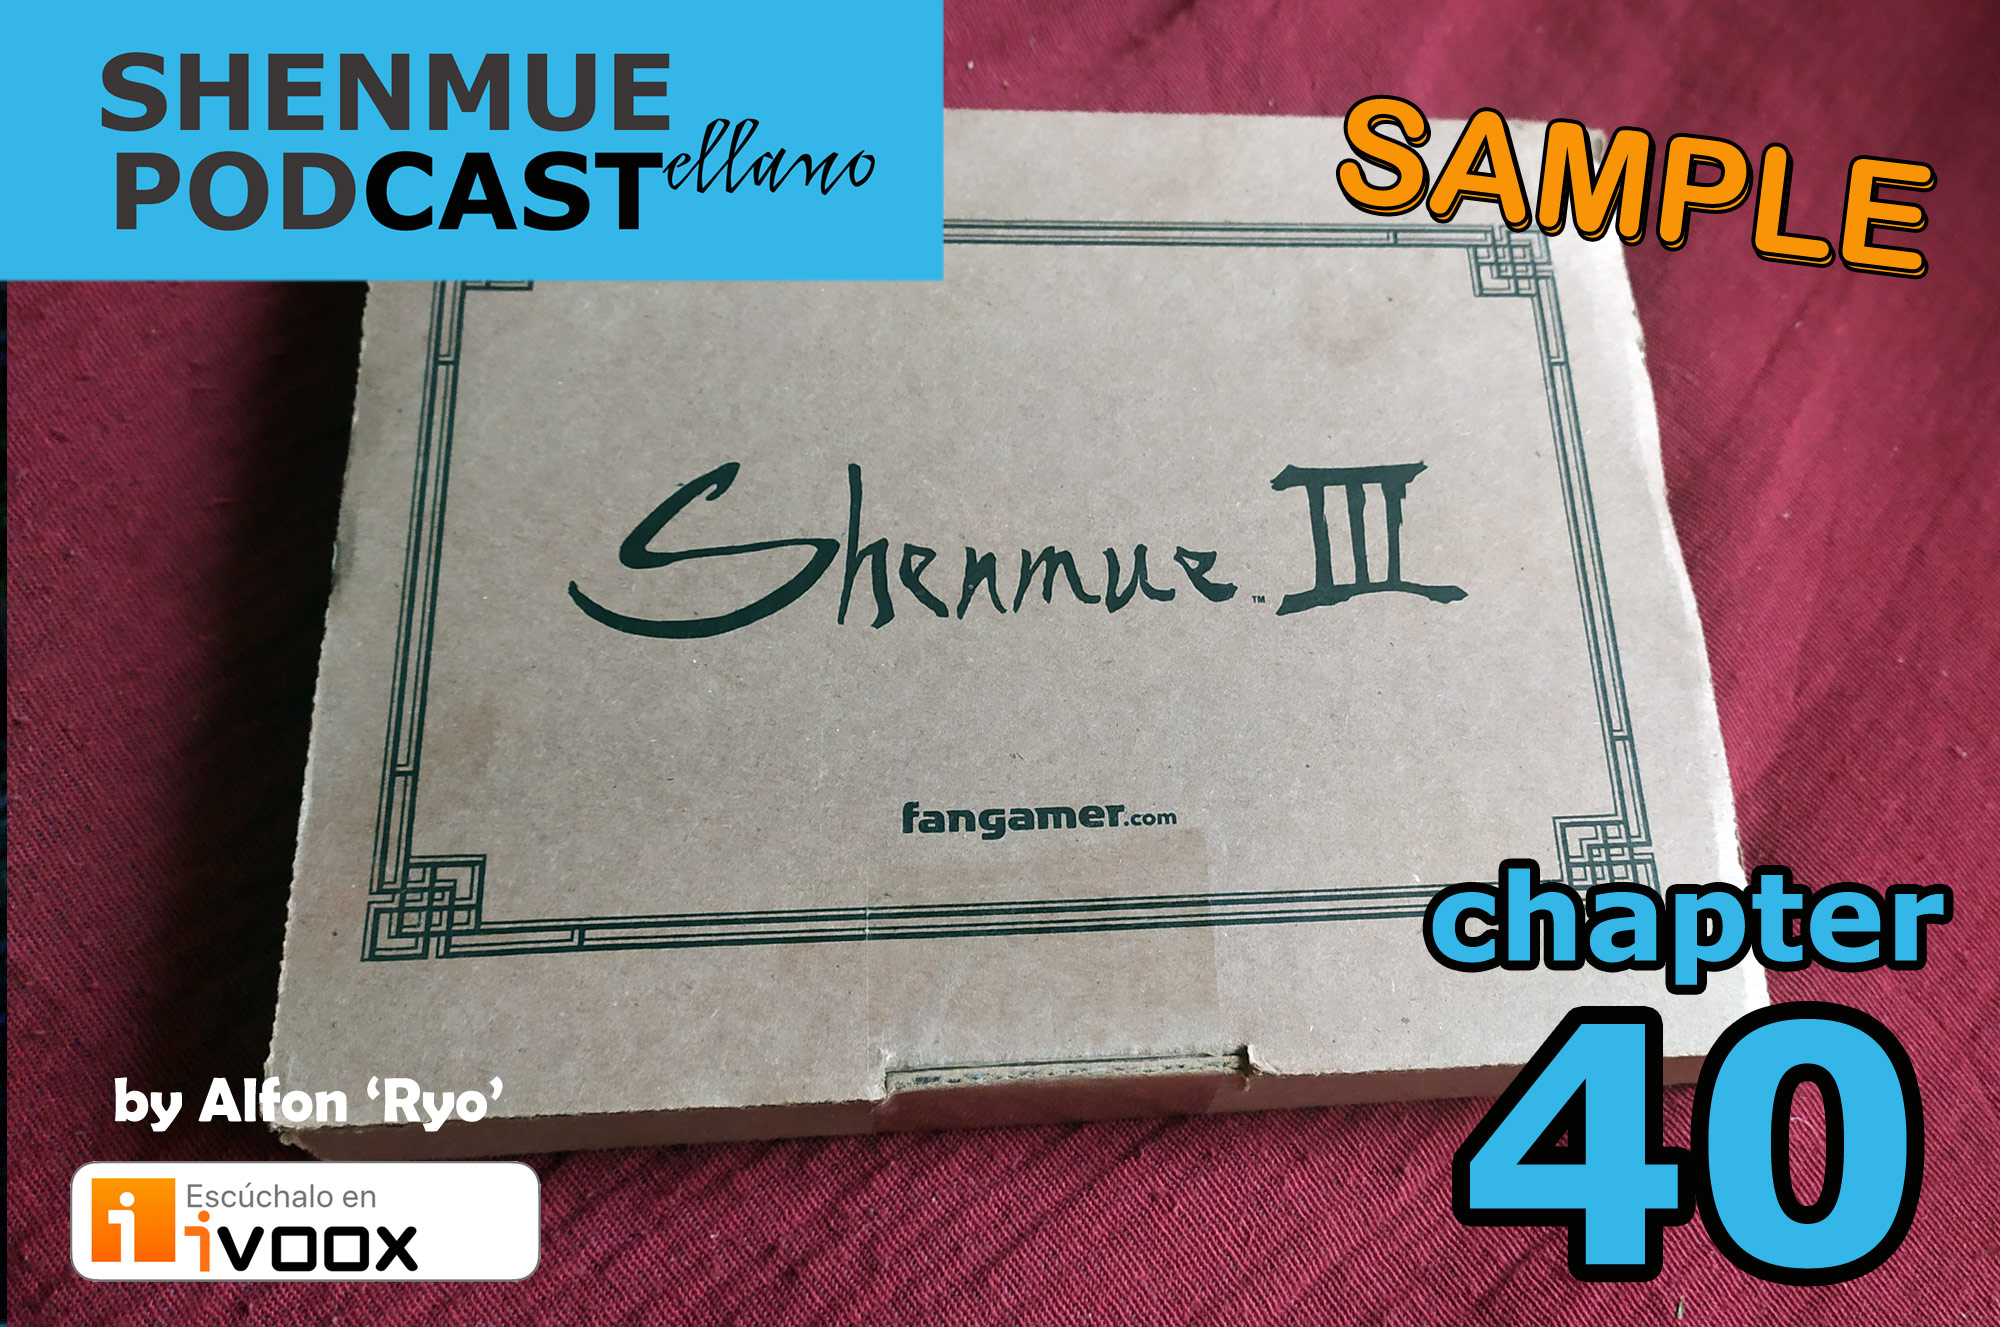 unboxing shenmue 3 kickstarter edition alfonso podcast